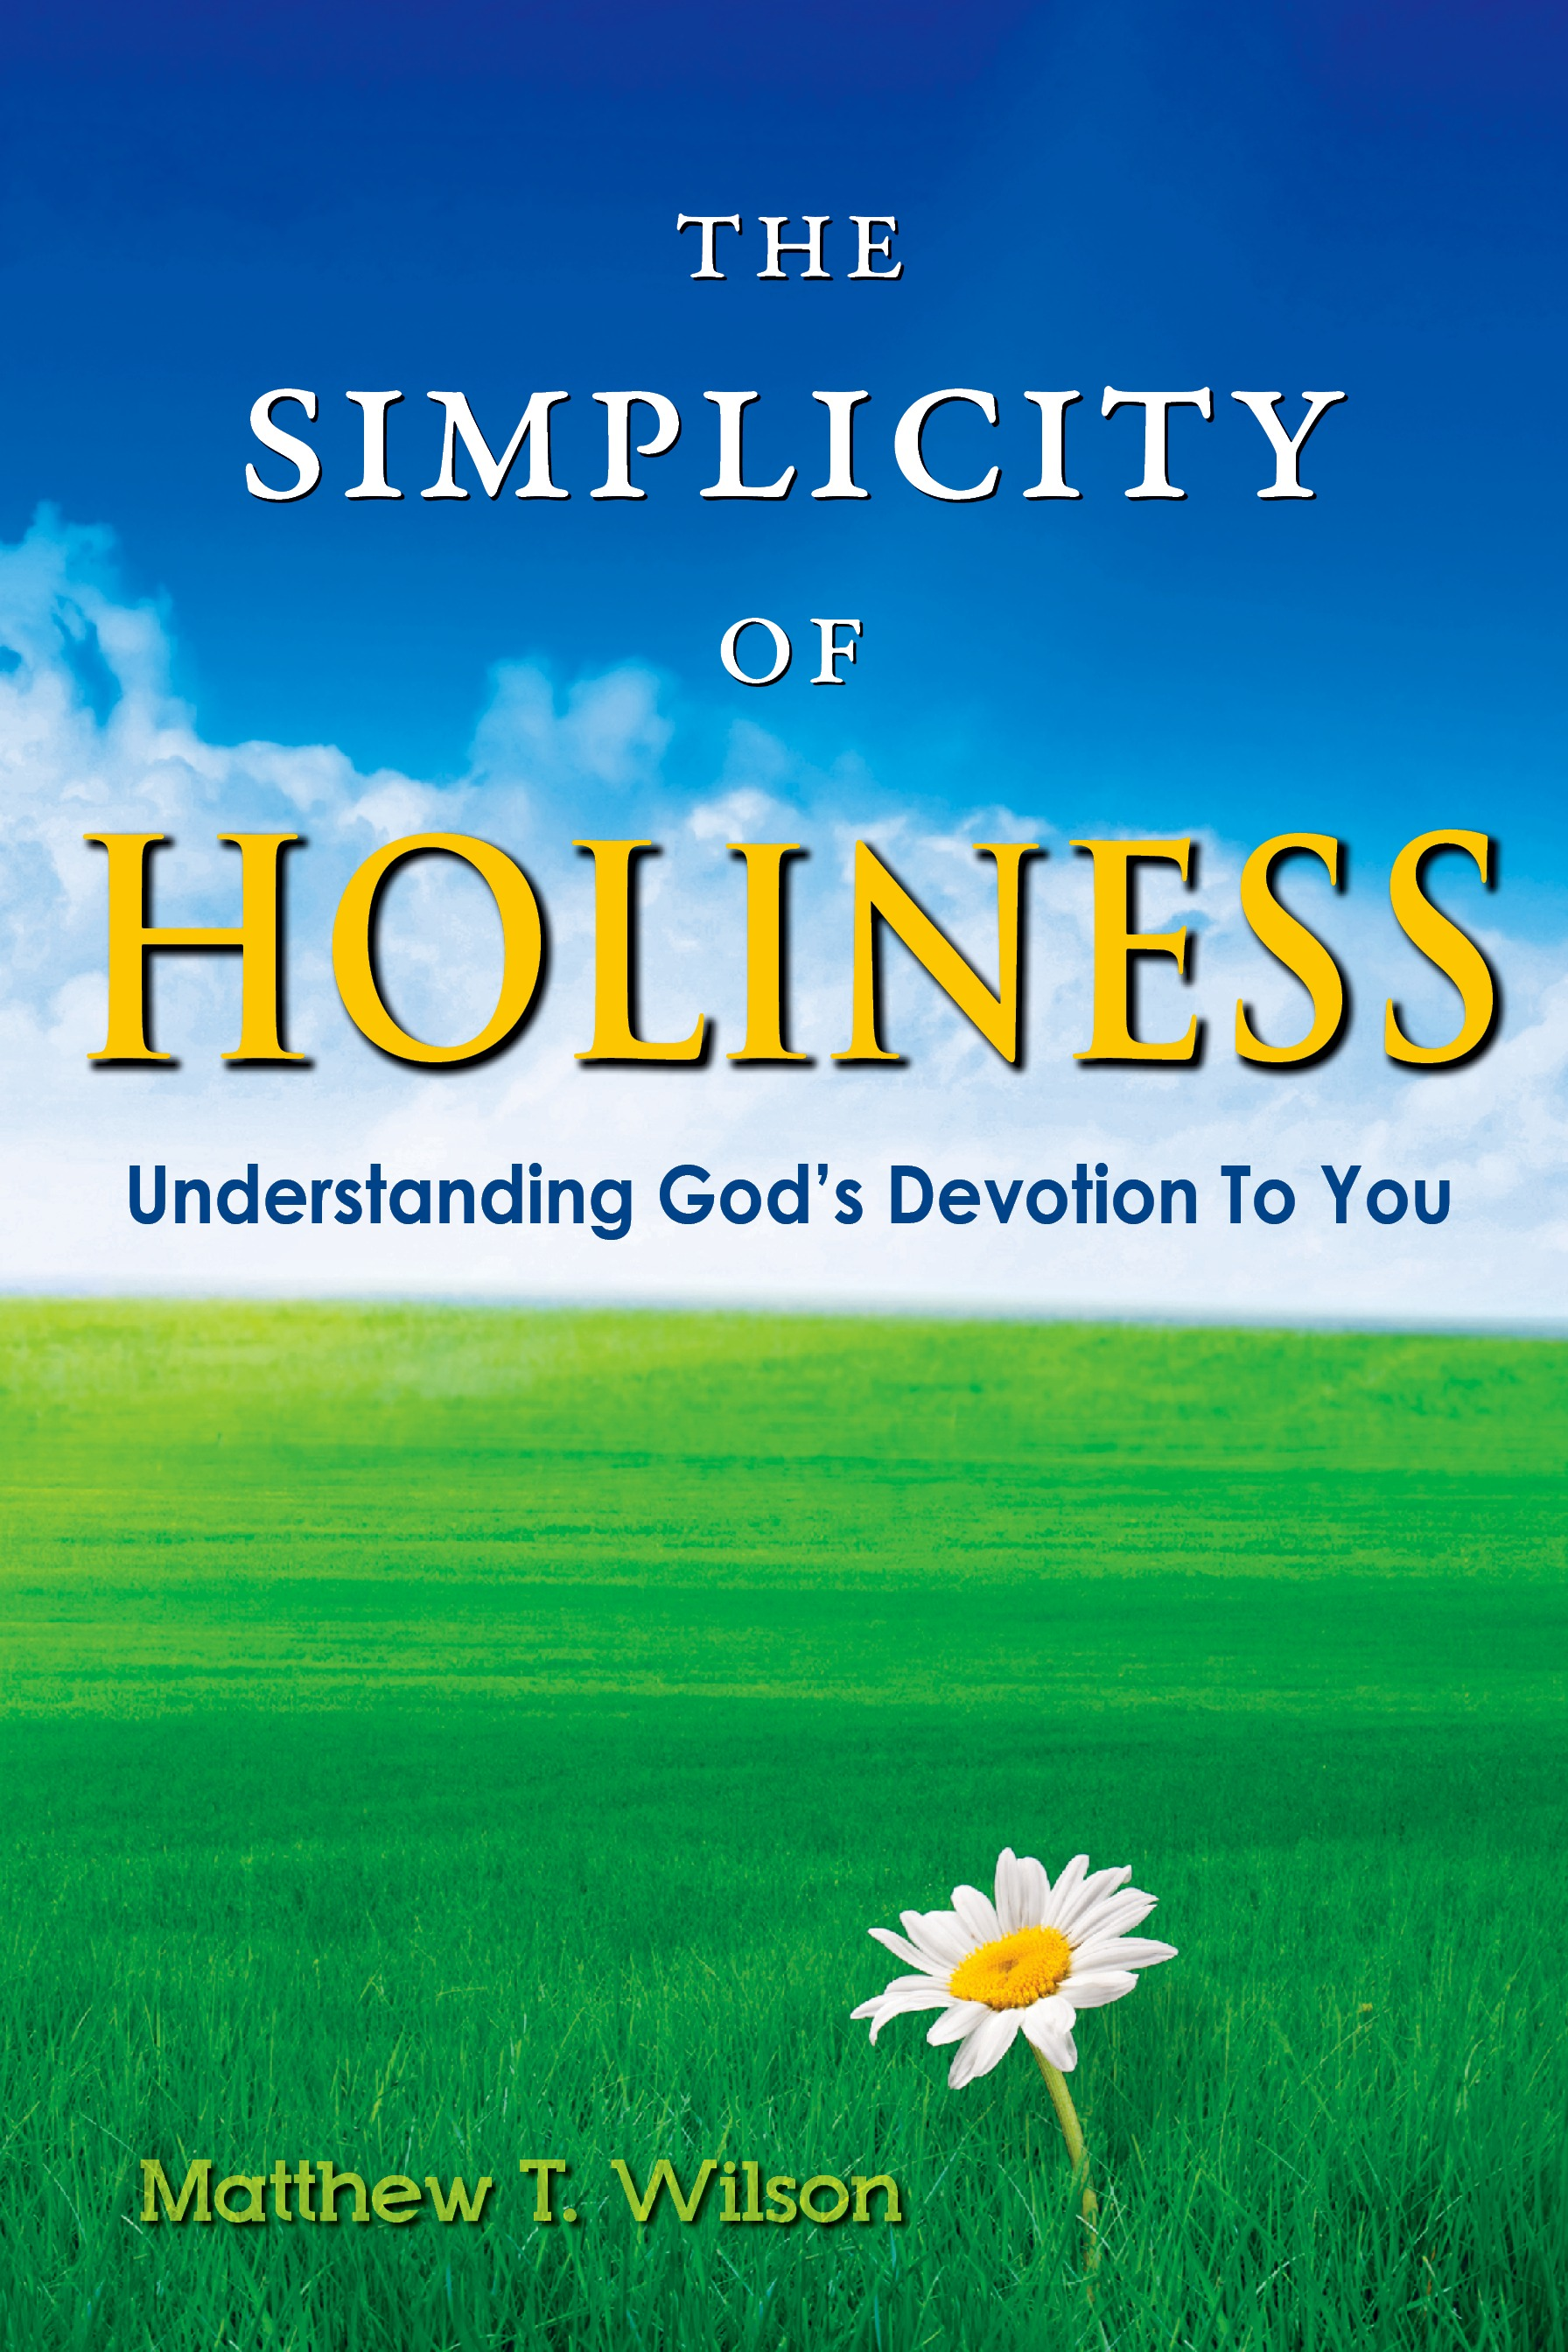 The Simplicity of Holiness: Understanding God's Devotion to You